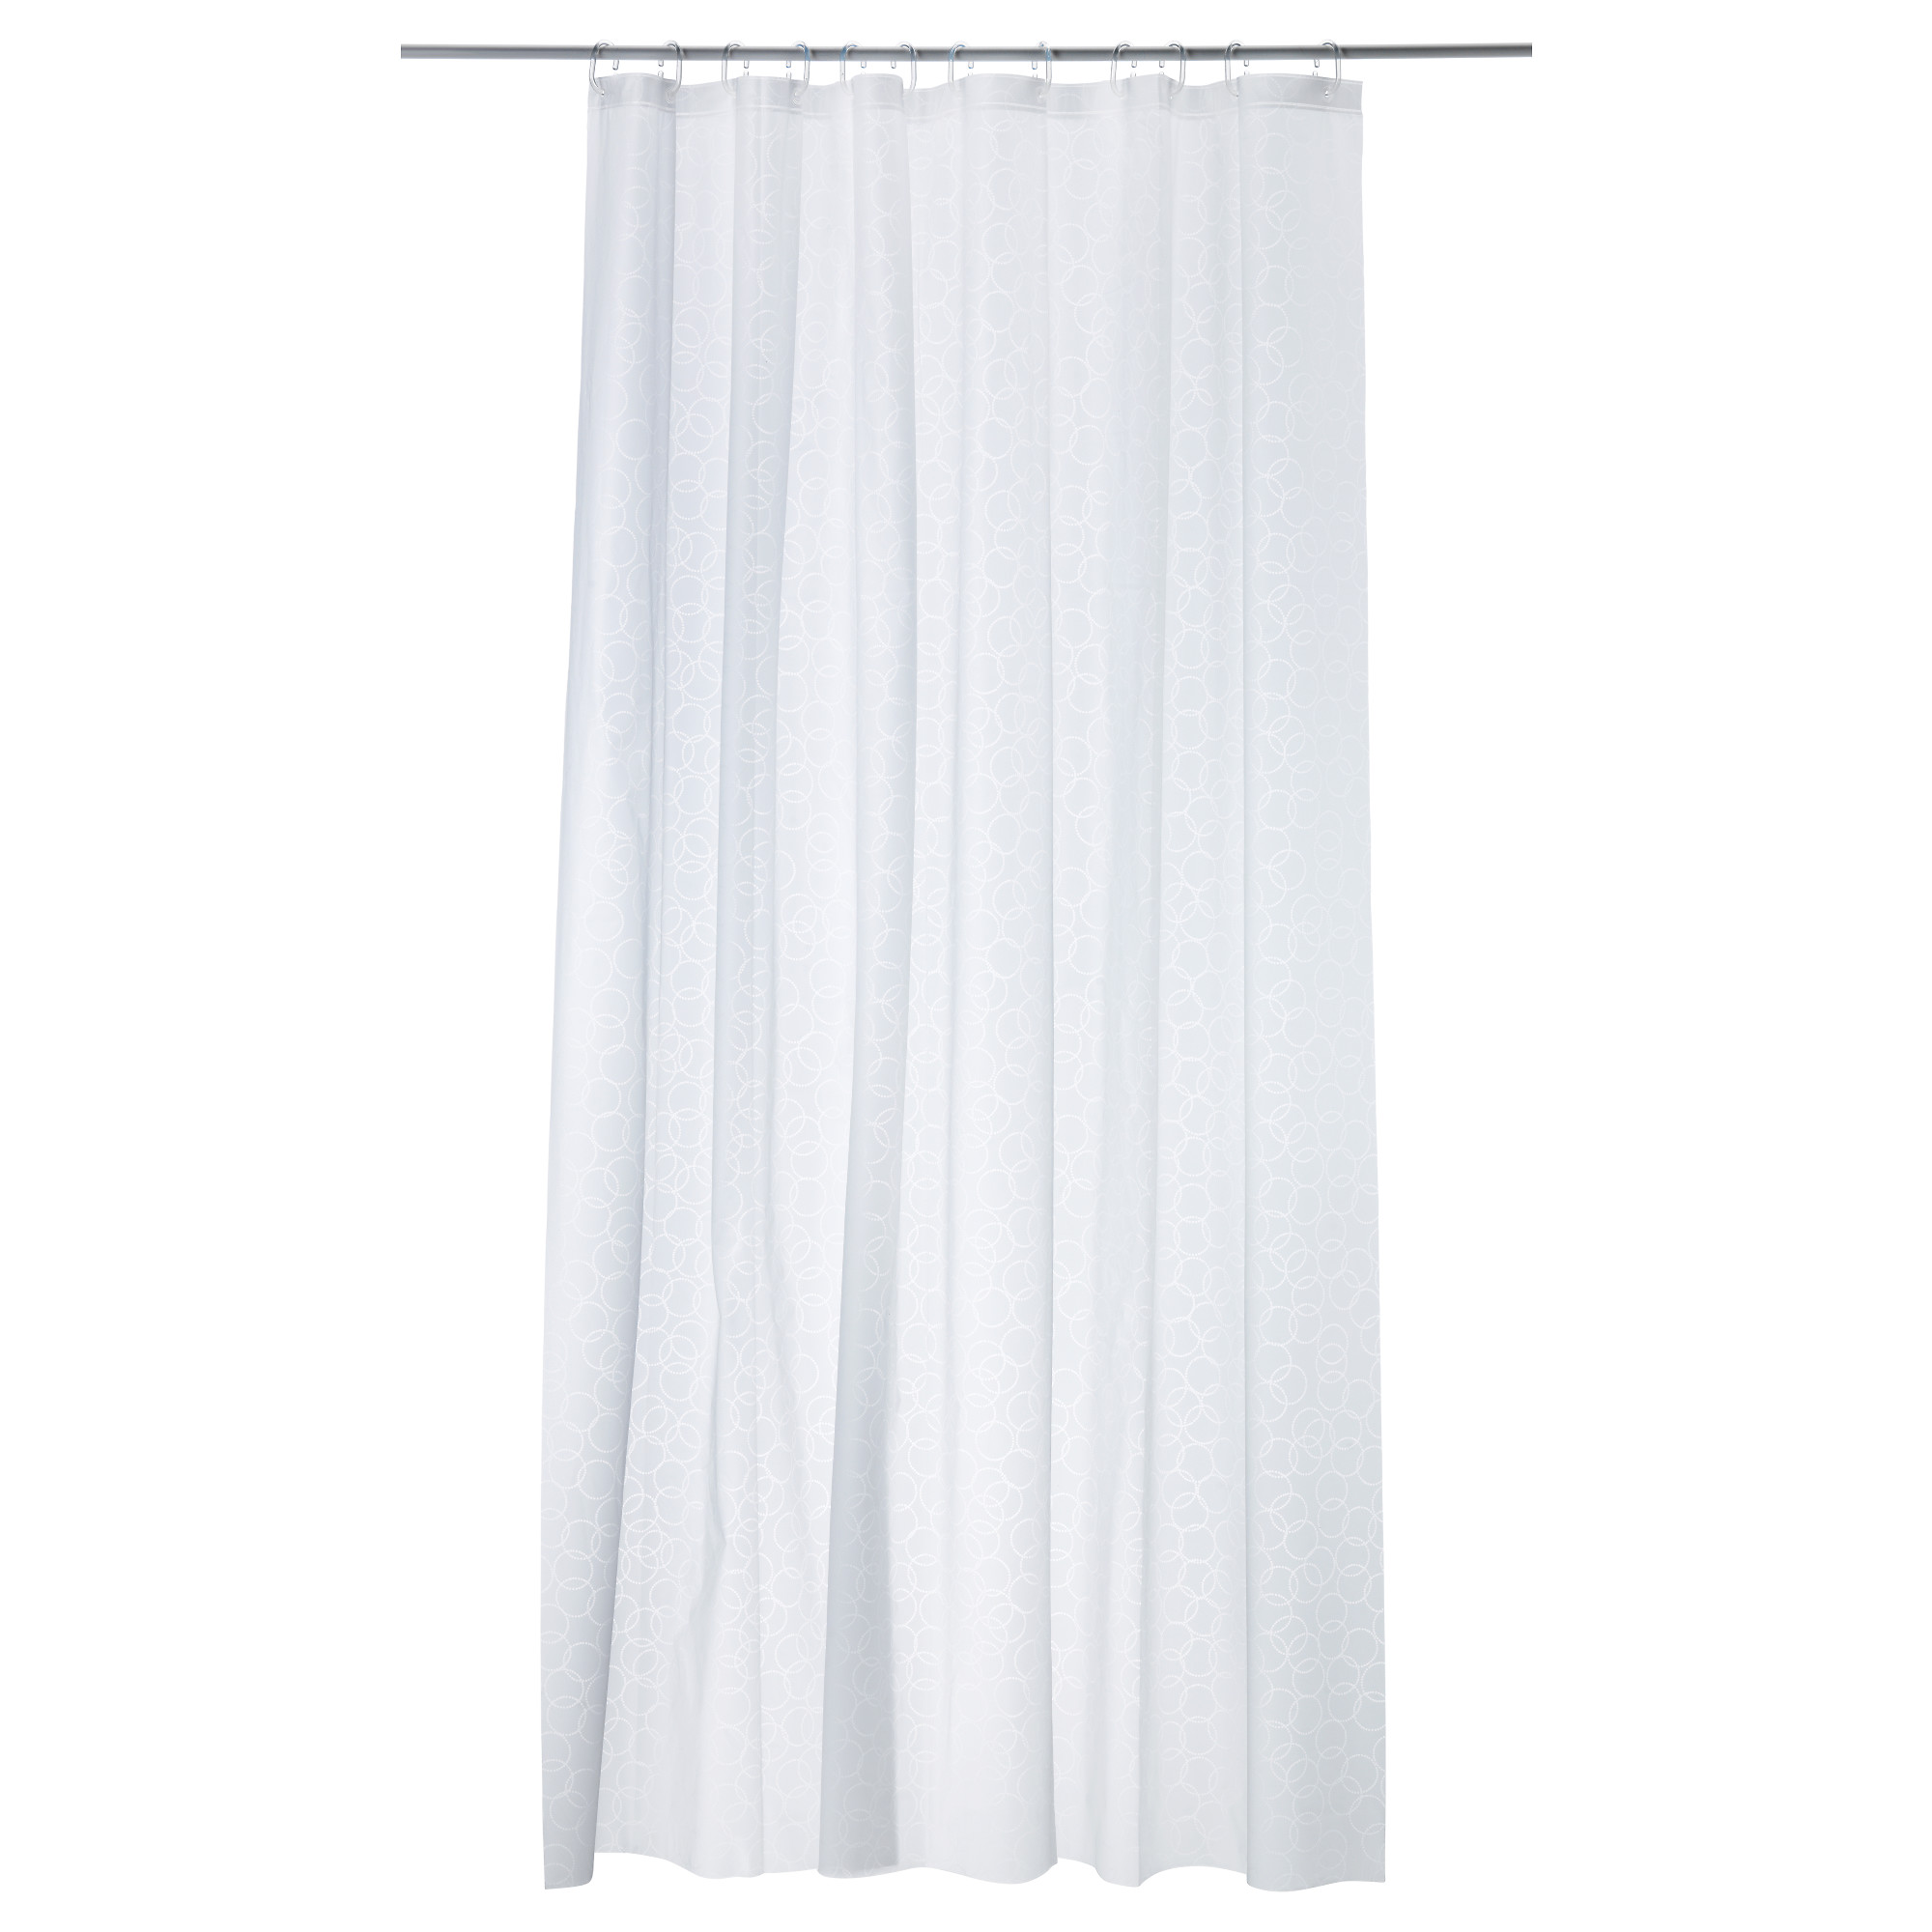 INNAREN Shower Curtain